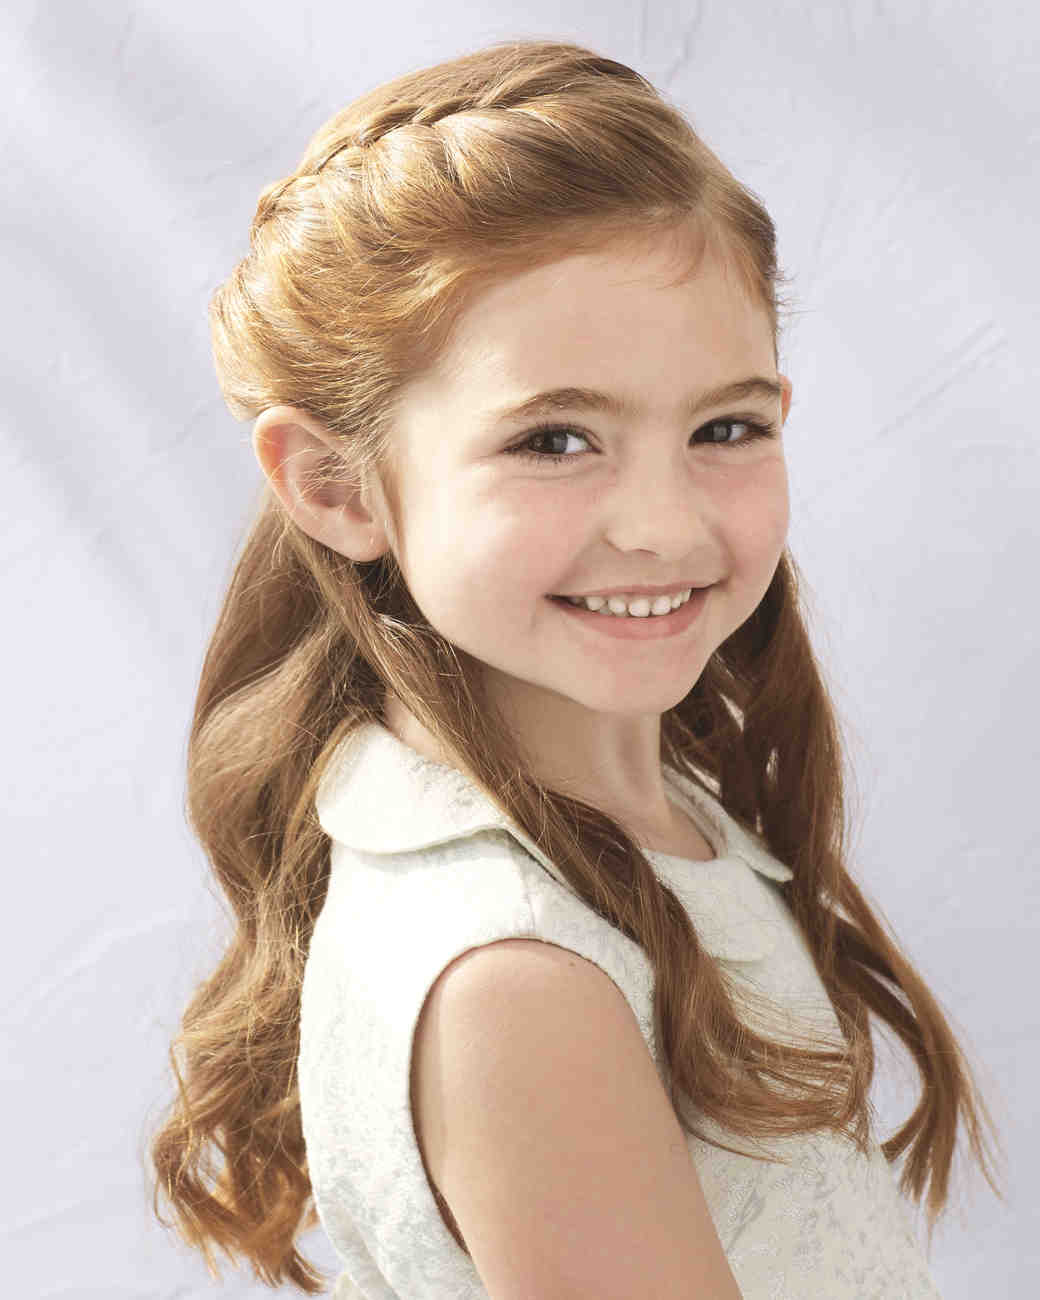 Girl Hairstyle : Flower girl hairstyles that are cute and comfy martha